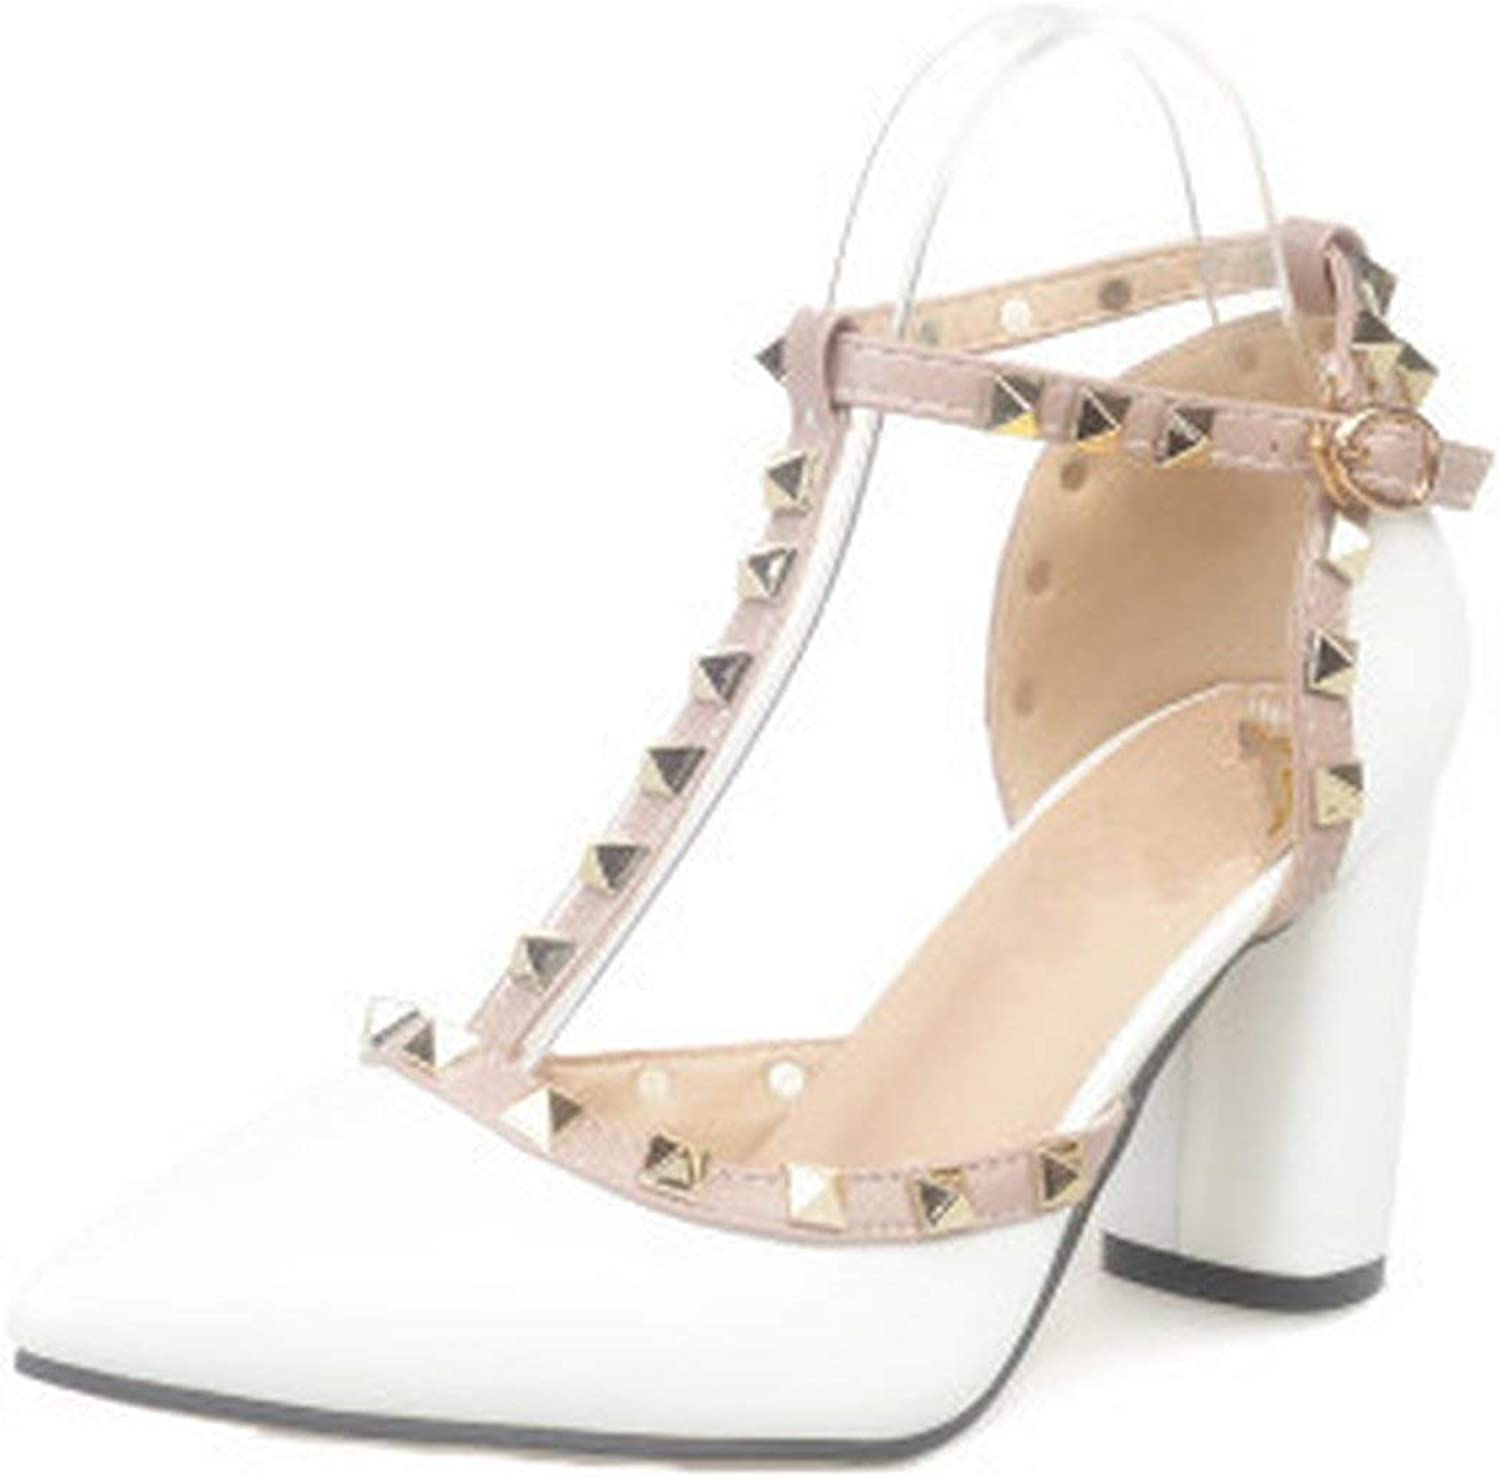 HANBINGPO Women's shoes Summer Thick with Pumps Buckle Hollow Rivets Pointed high-Heeled Patent Leather Sandals,White,37